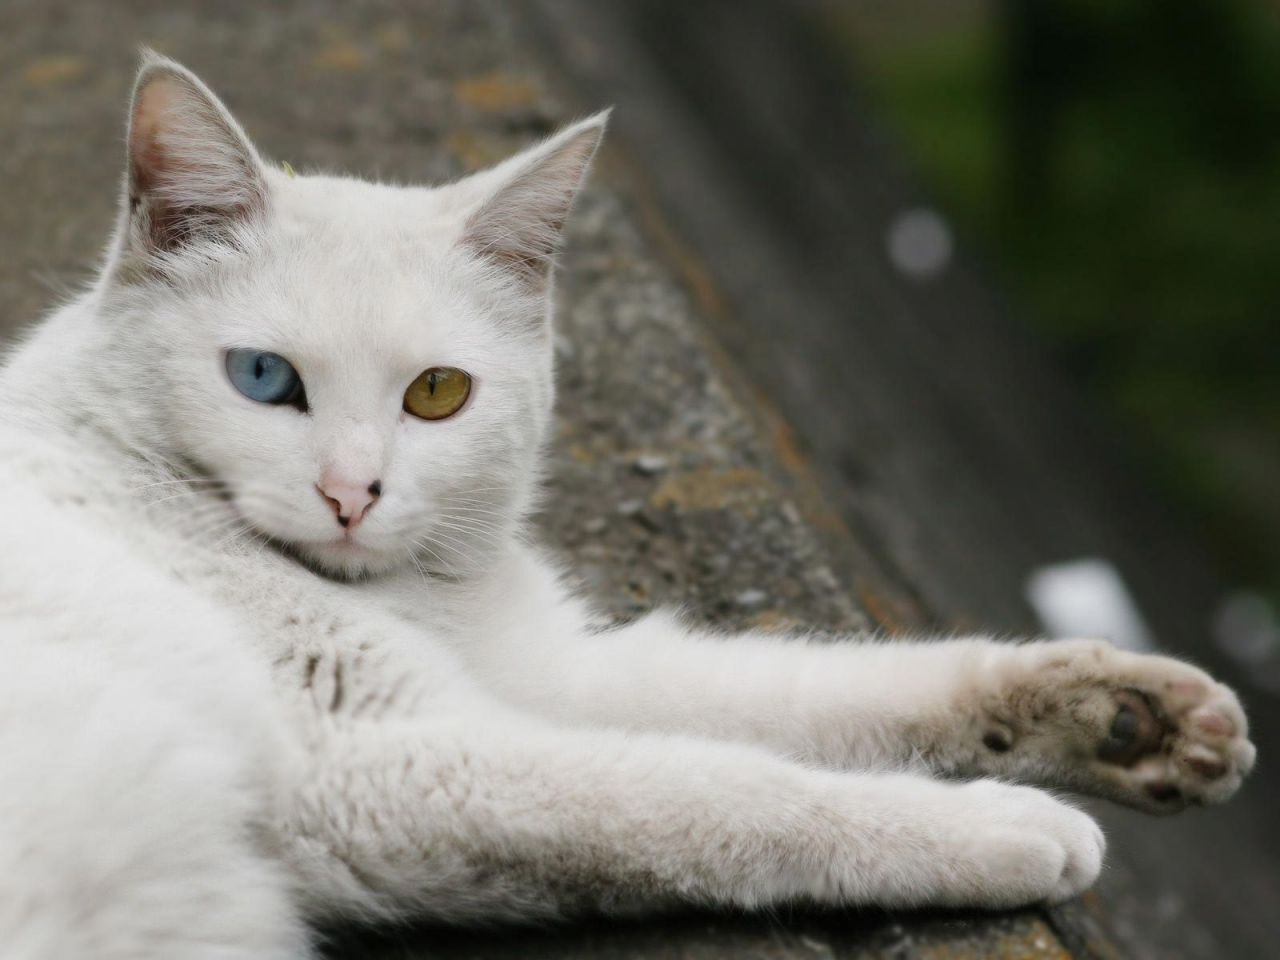 Turkish Angora Cat Laying Down for 1280 x 960 resolution